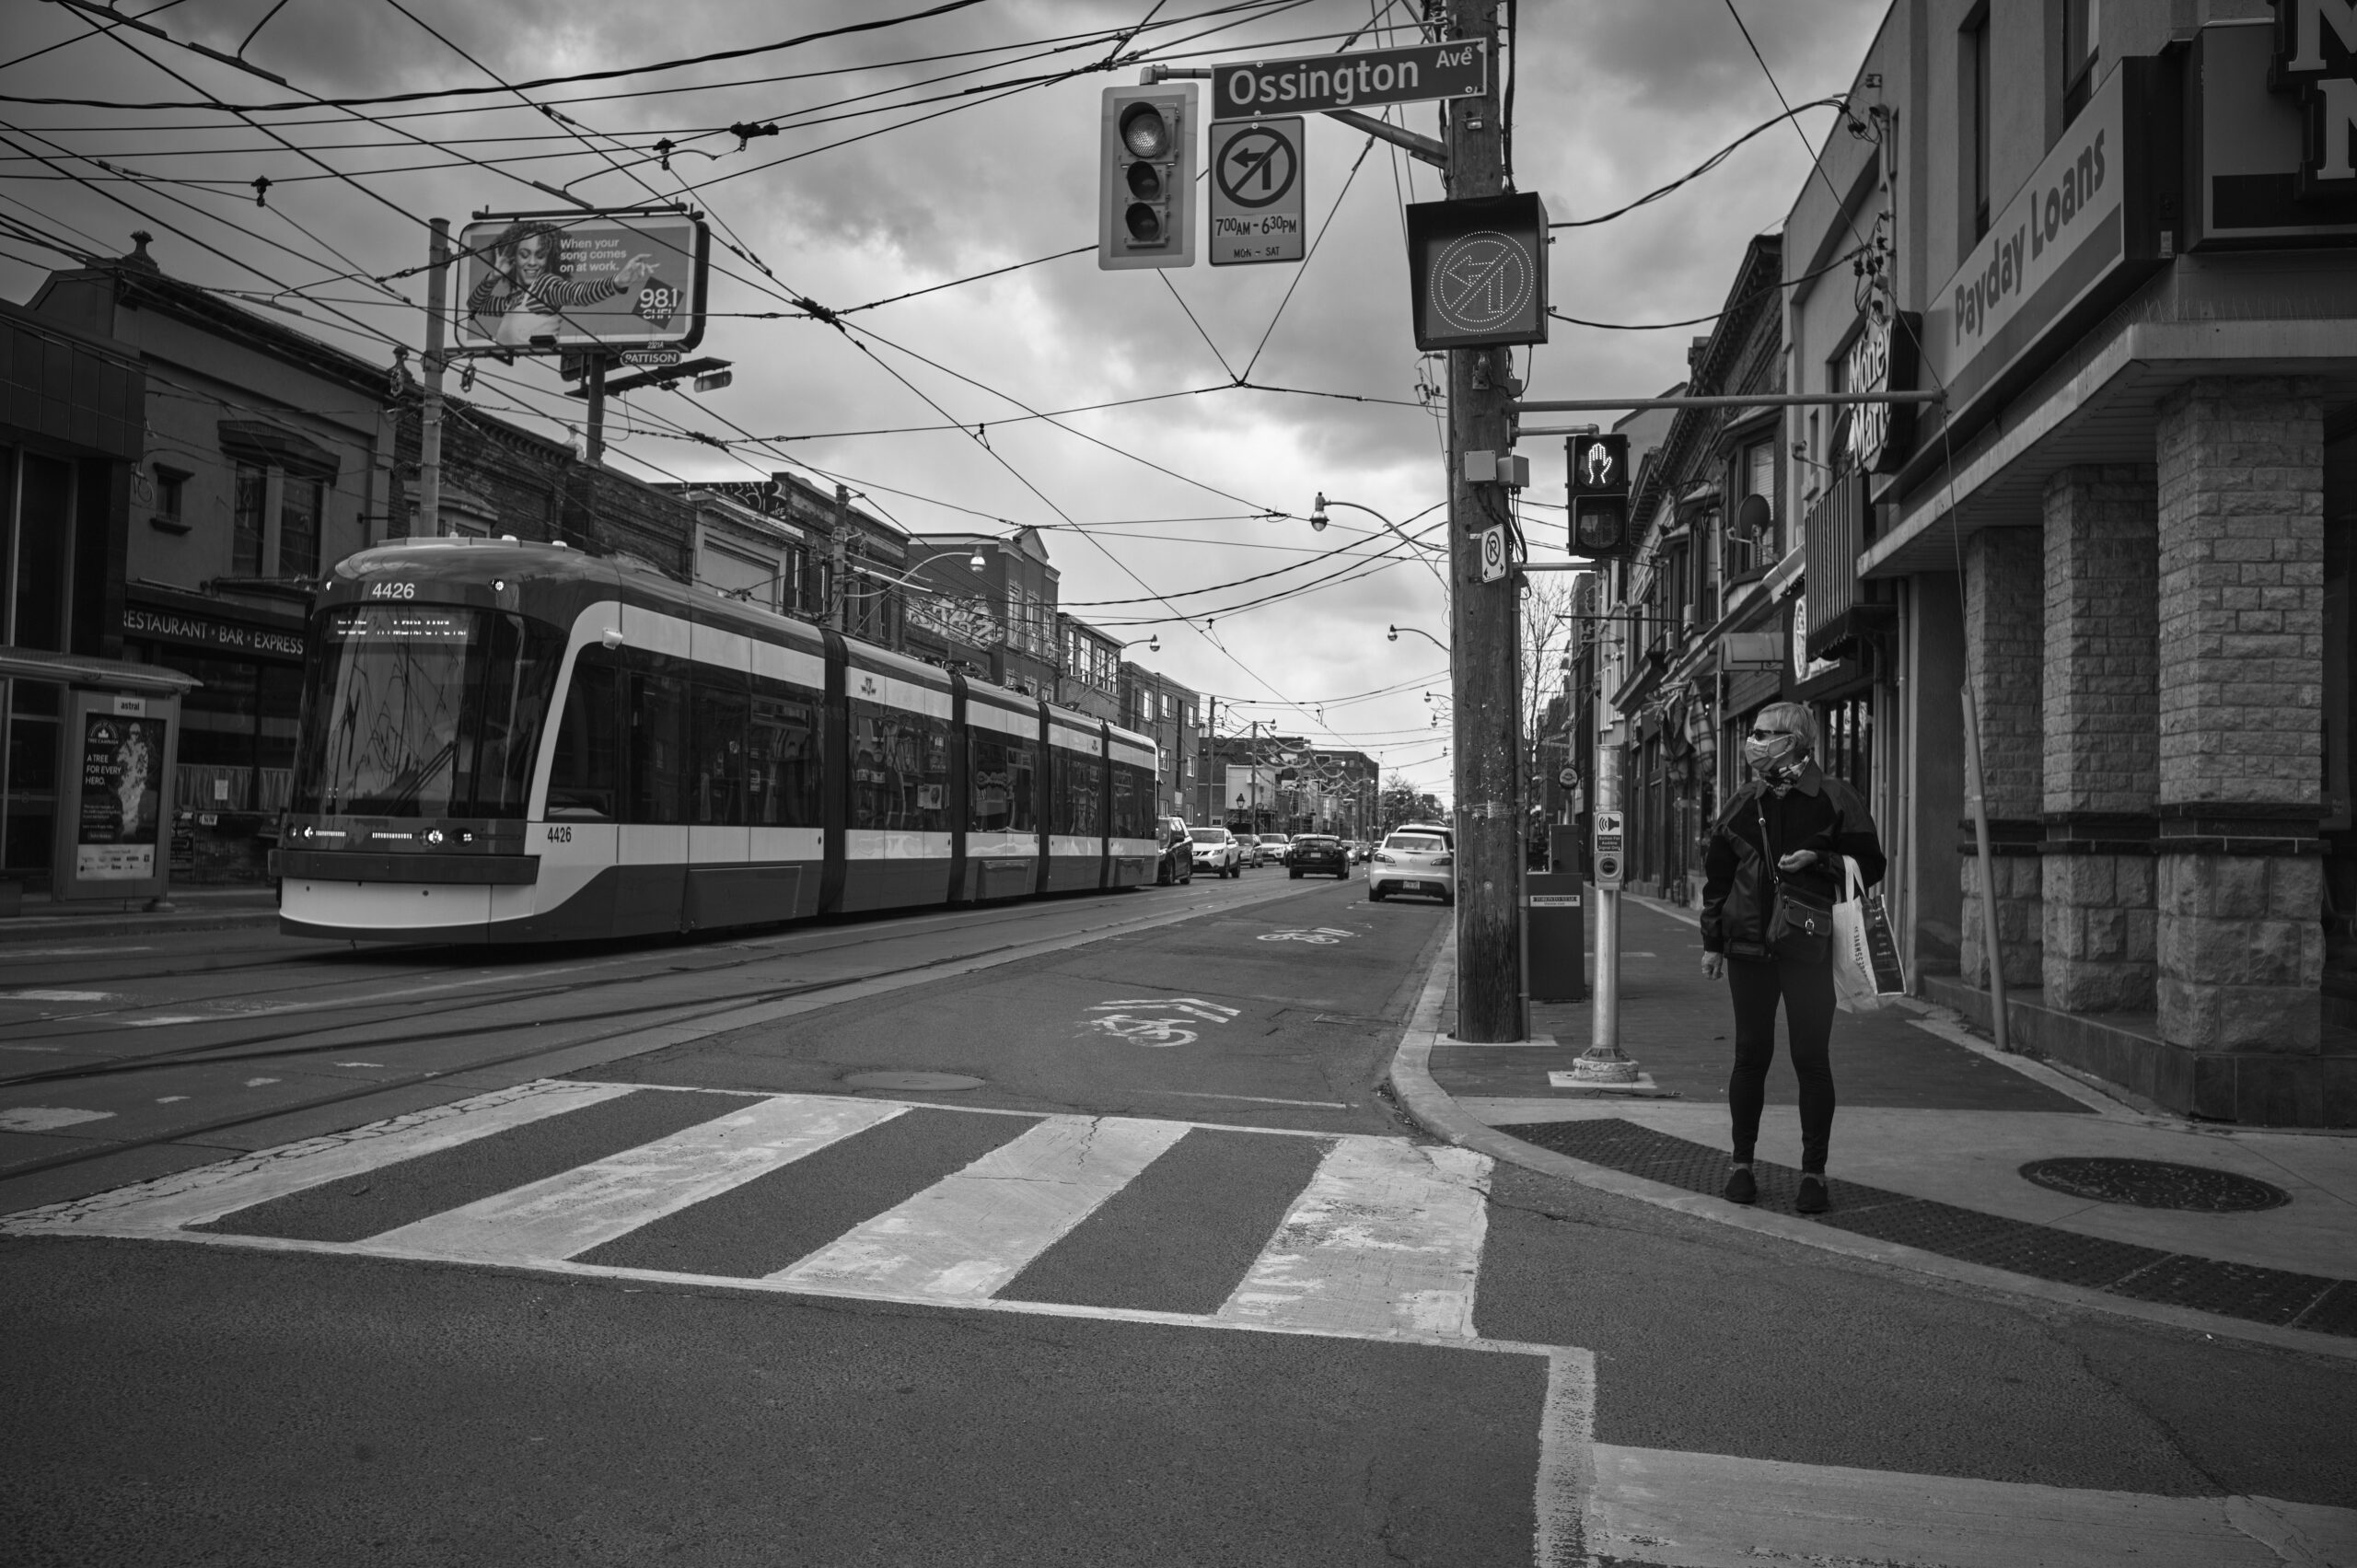 Empty streets, Ossington St. intersection. Late March